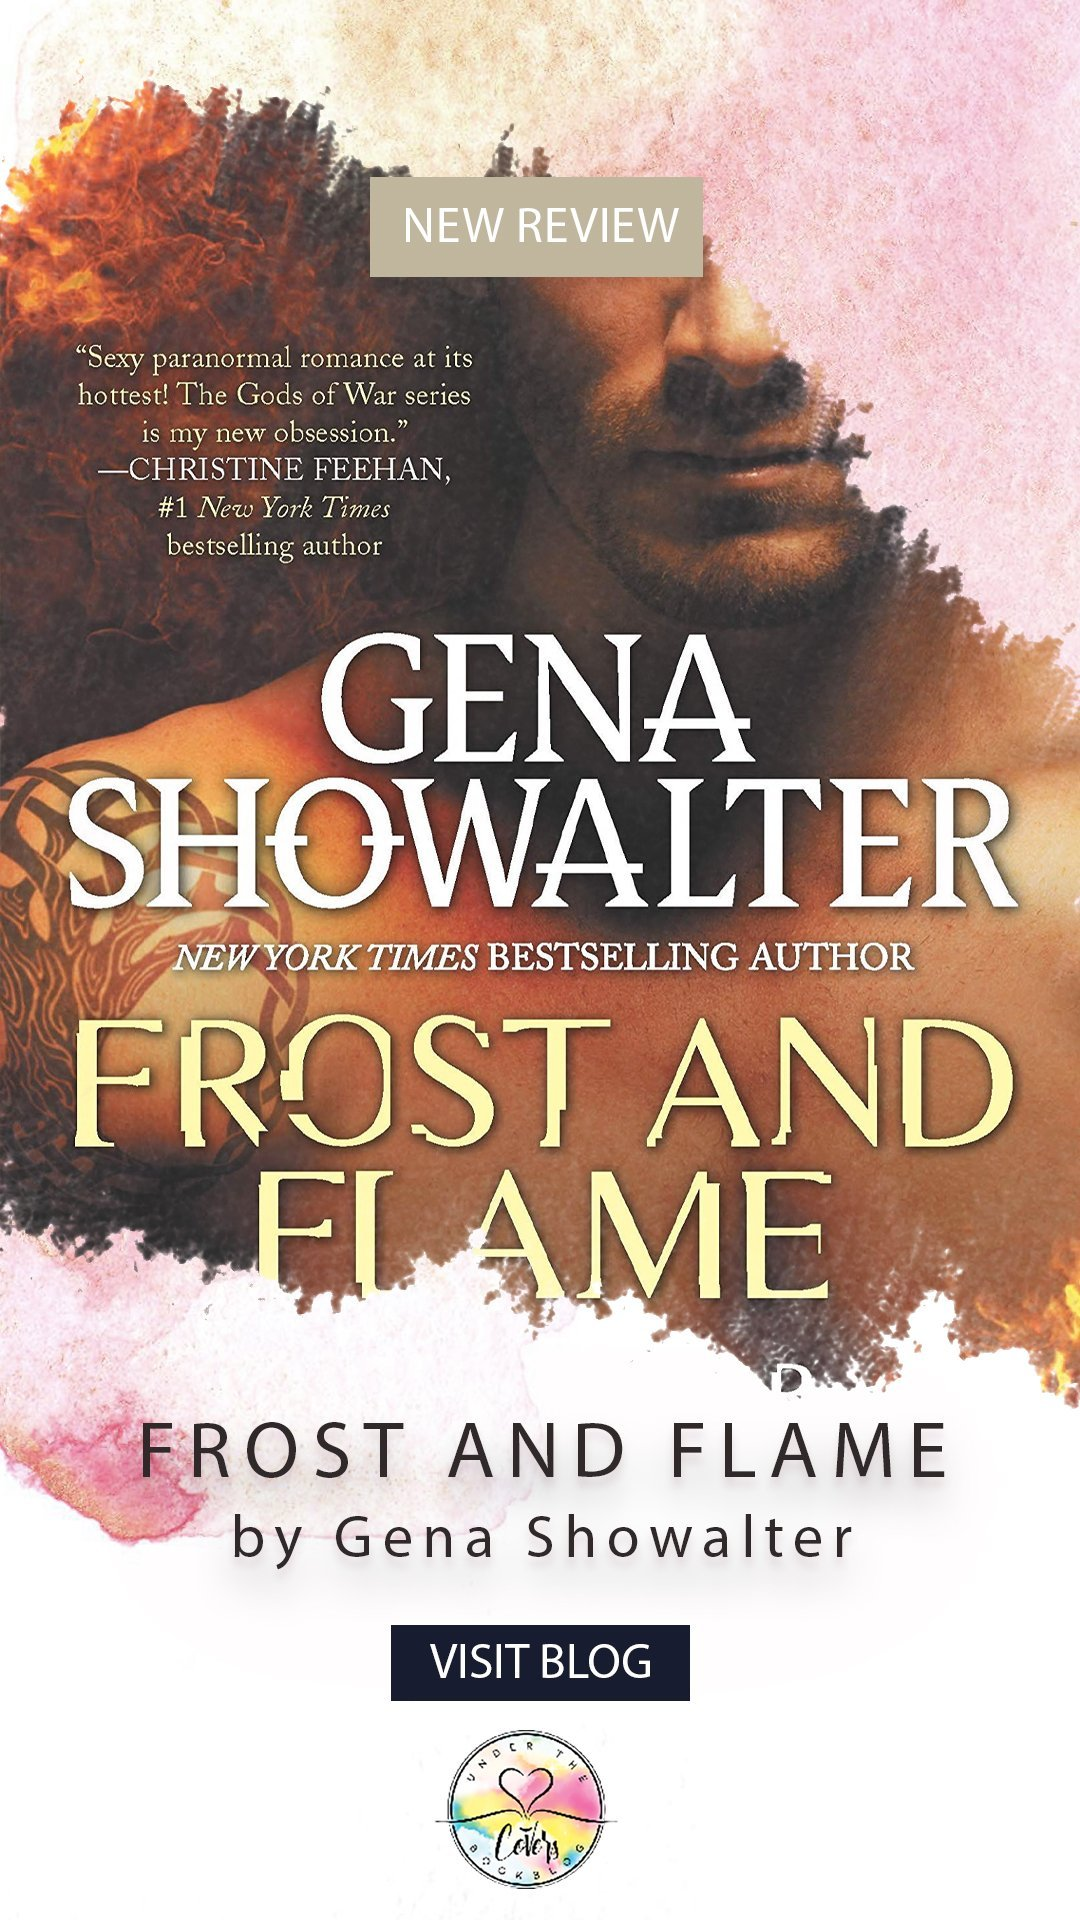 ARC Review: Frost and Flame by Gena Showalter